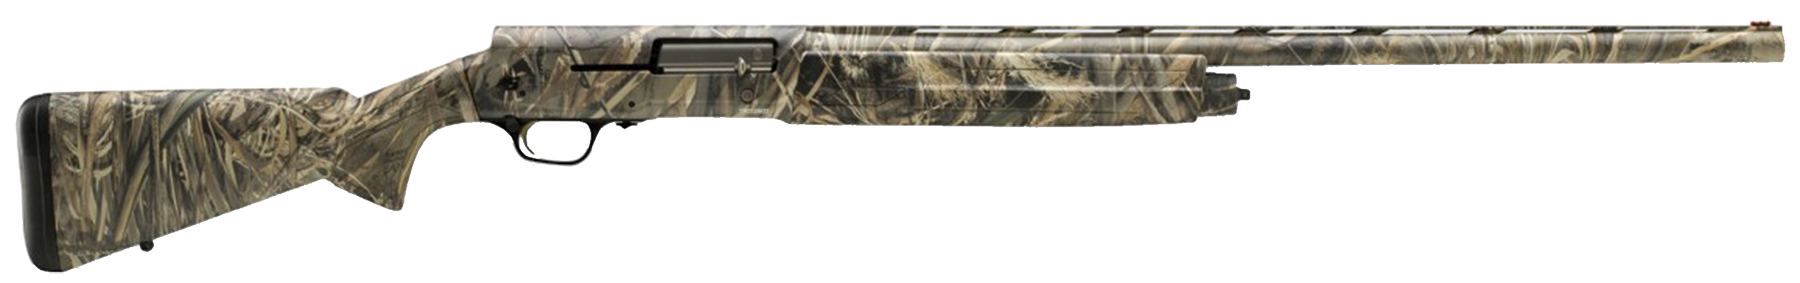 Browning A5 Semi-Auto Shotgun 3.5'' 12 Gauge 28'' Camo - Synthetic - Realtree Max-5